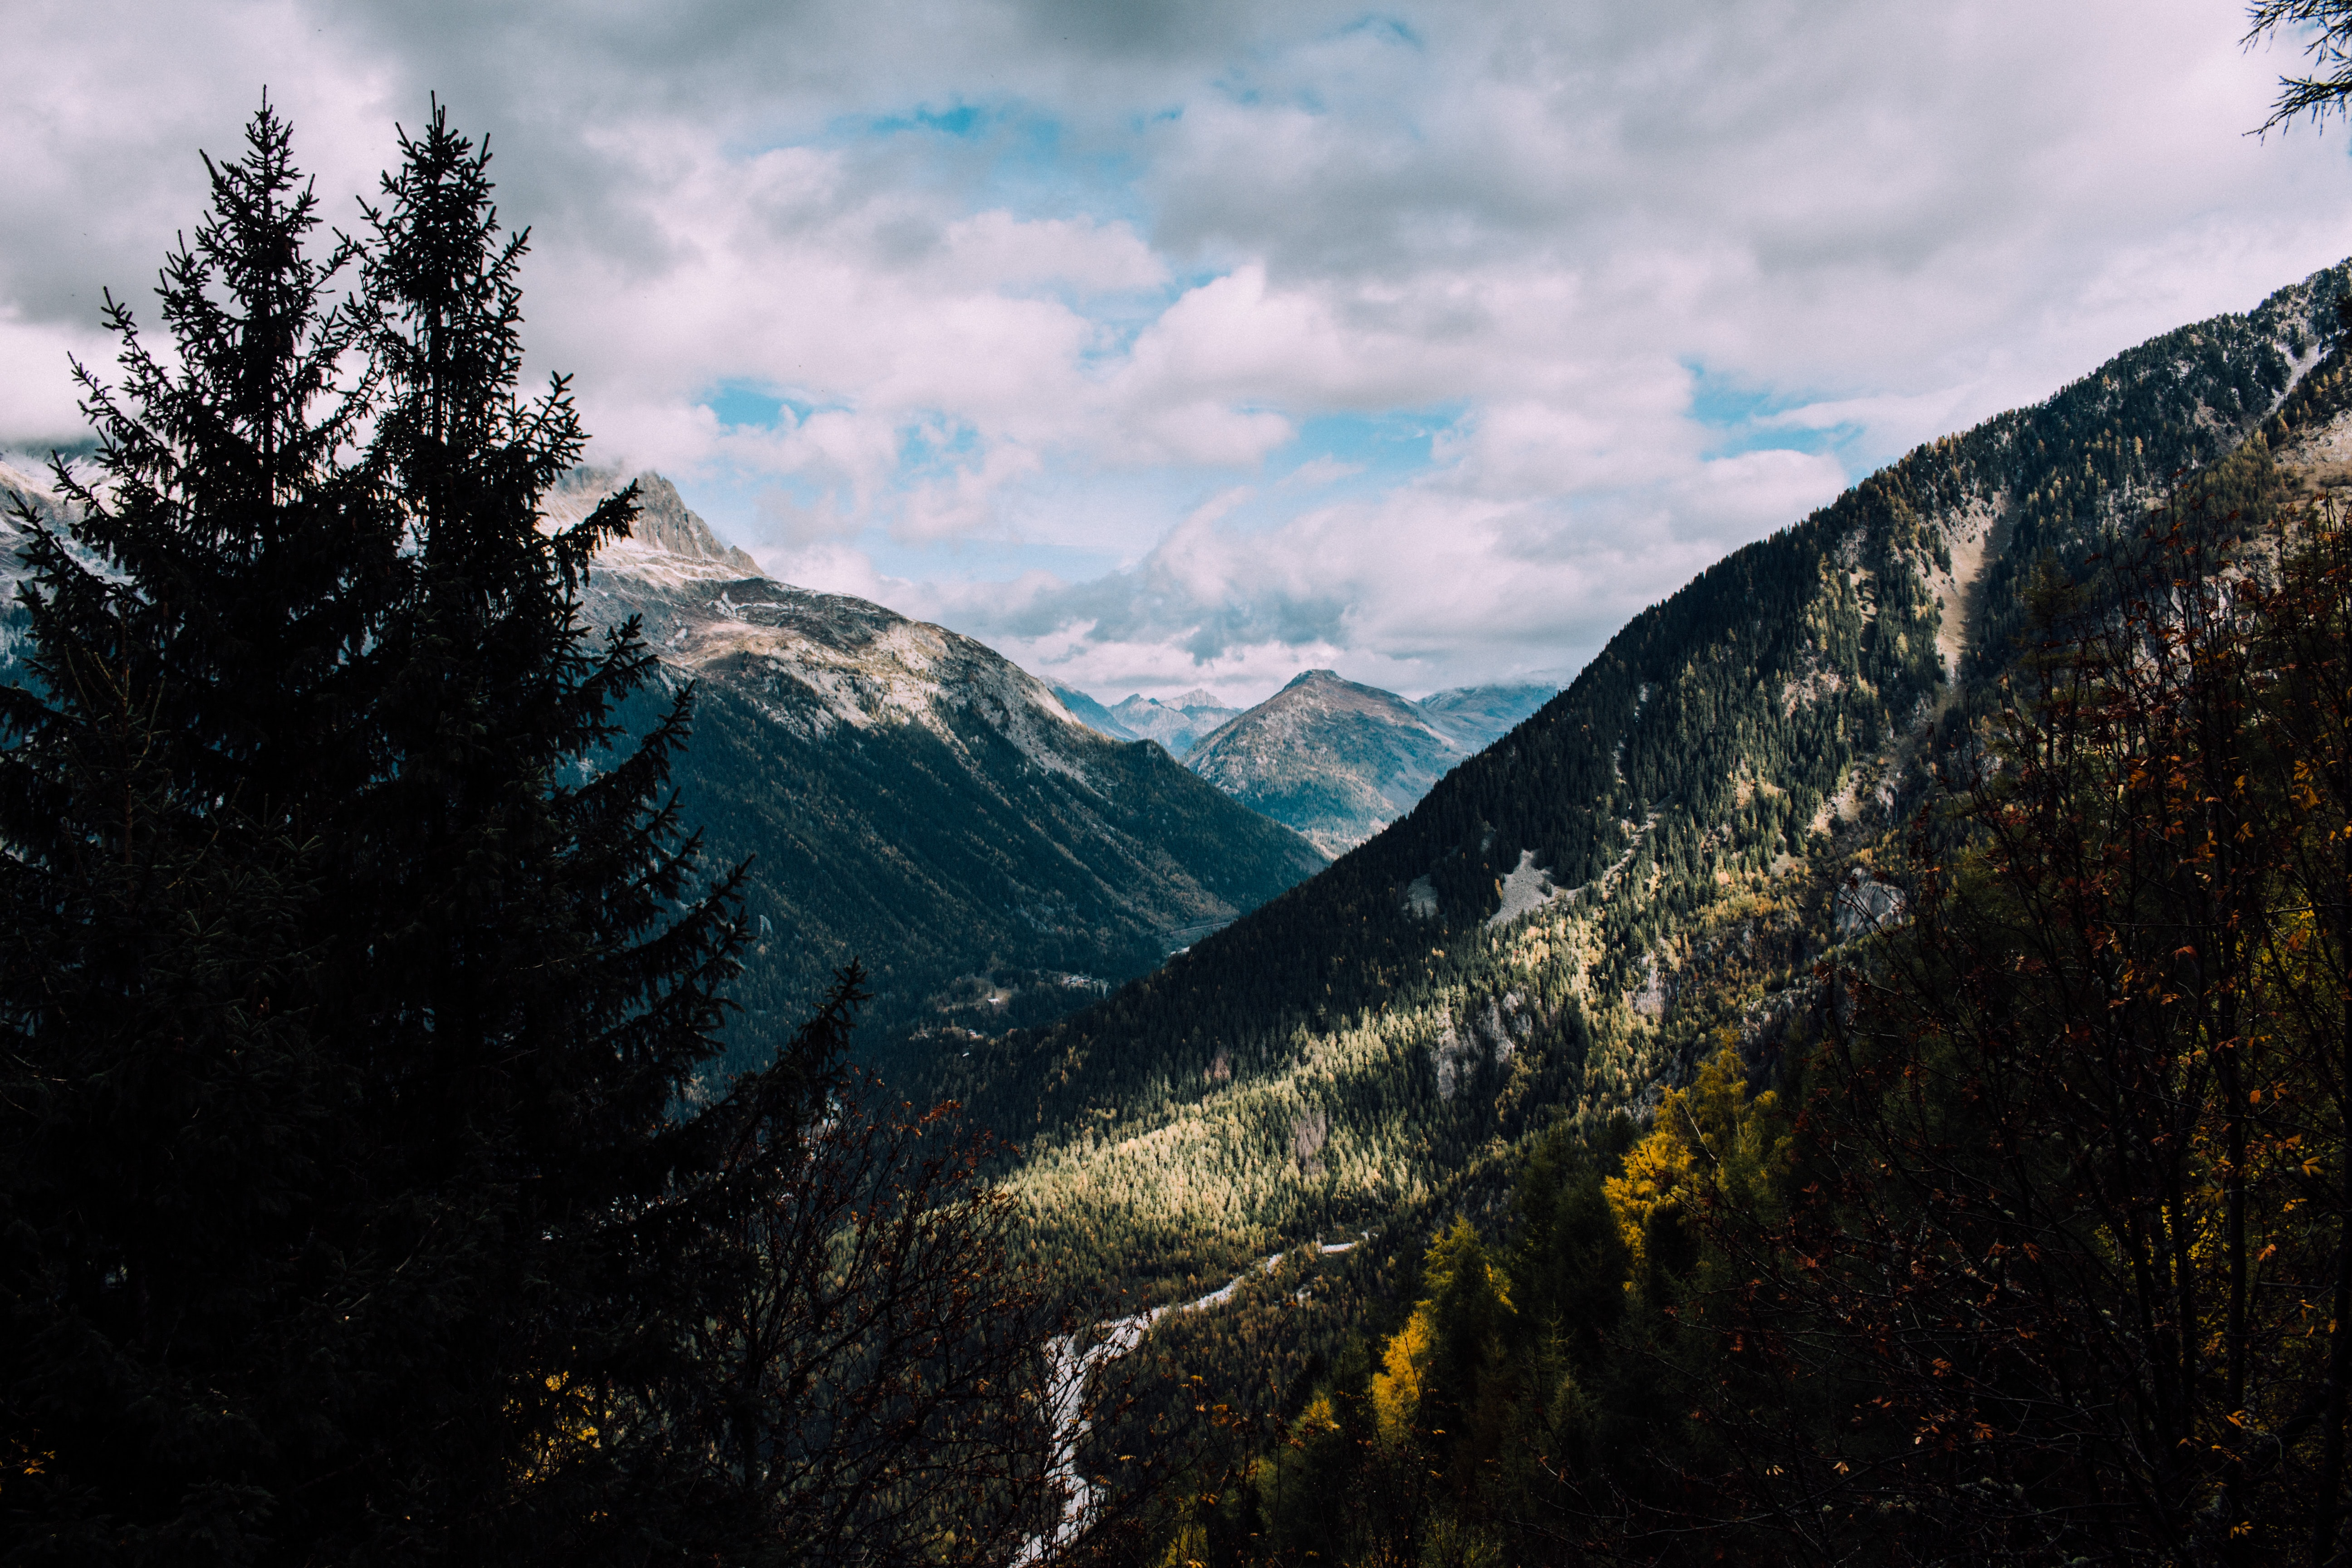 A scenic shot of a steep mountain valley in Chamonix-Mont-Blanc